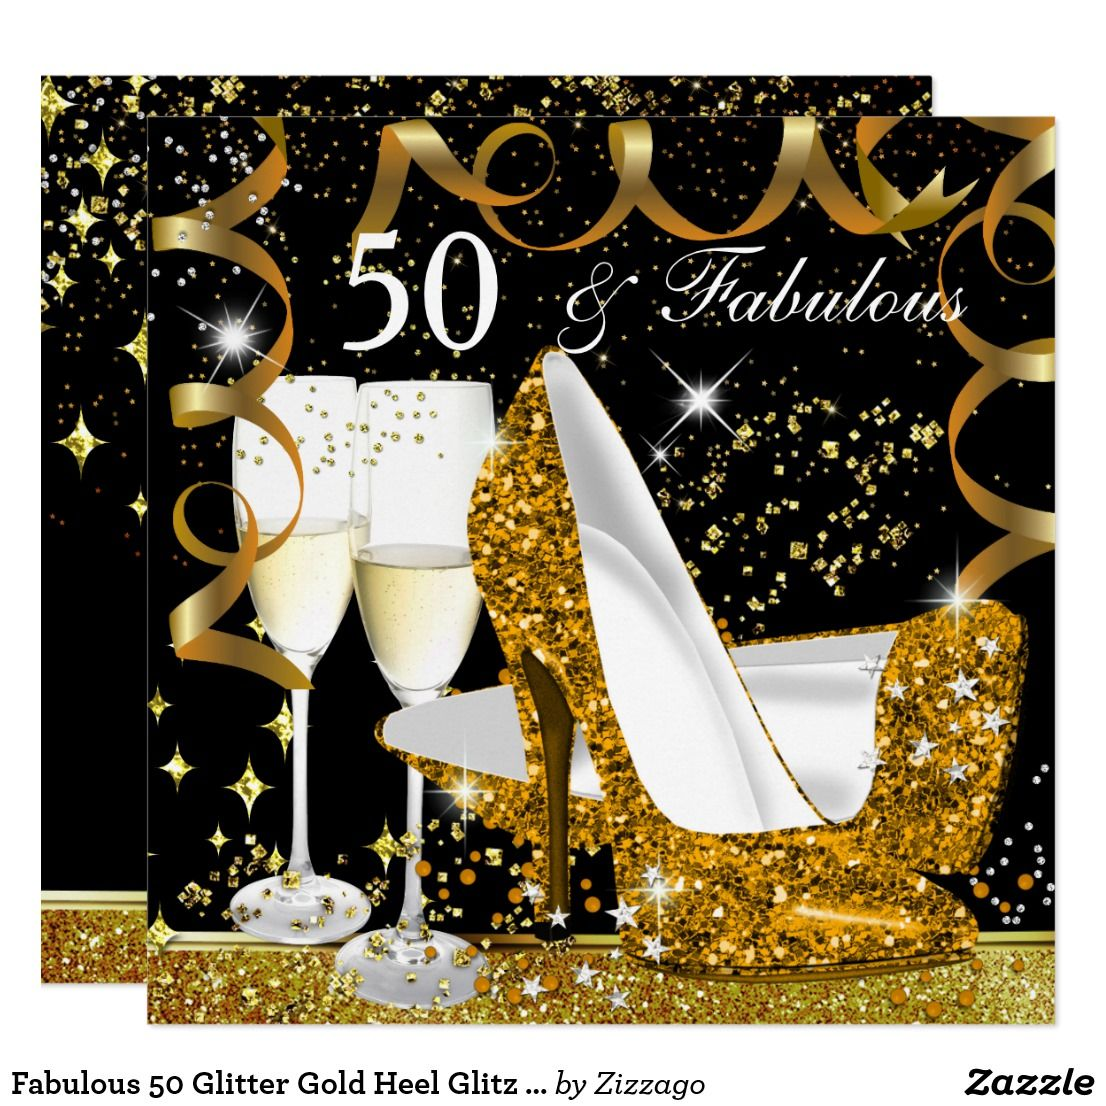 Fabulous 50 Glitter Gold Heel Glitz Glam Party Card Black and Gold 50  Fabulous 50th Bir…   50th birthday party invitations, Party invitations, Classy  birthday party